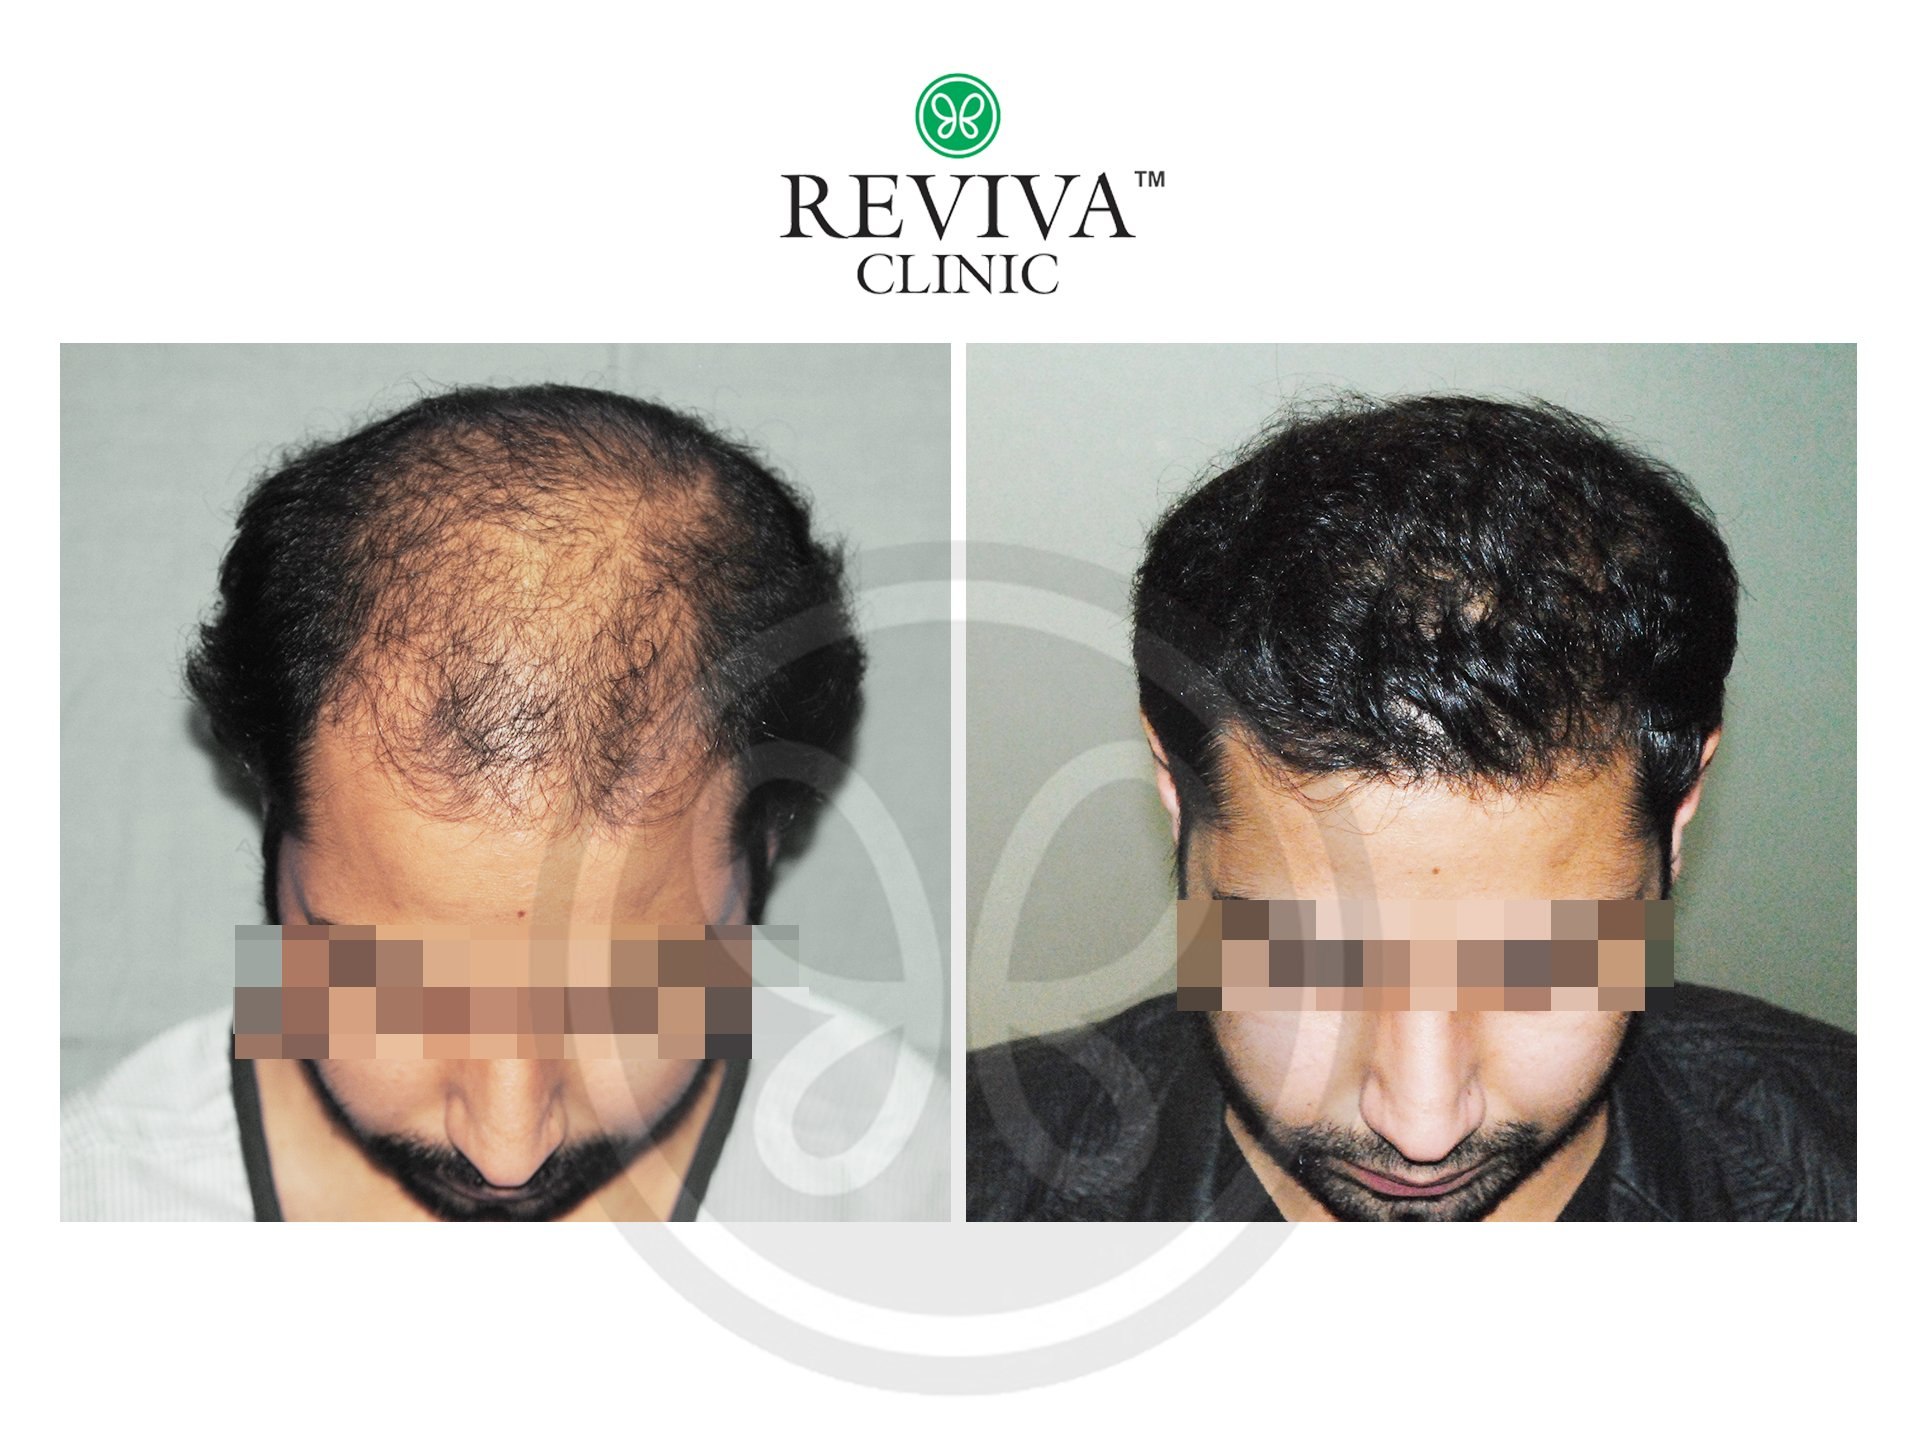 Reviva Before and After Hair Transplant 2